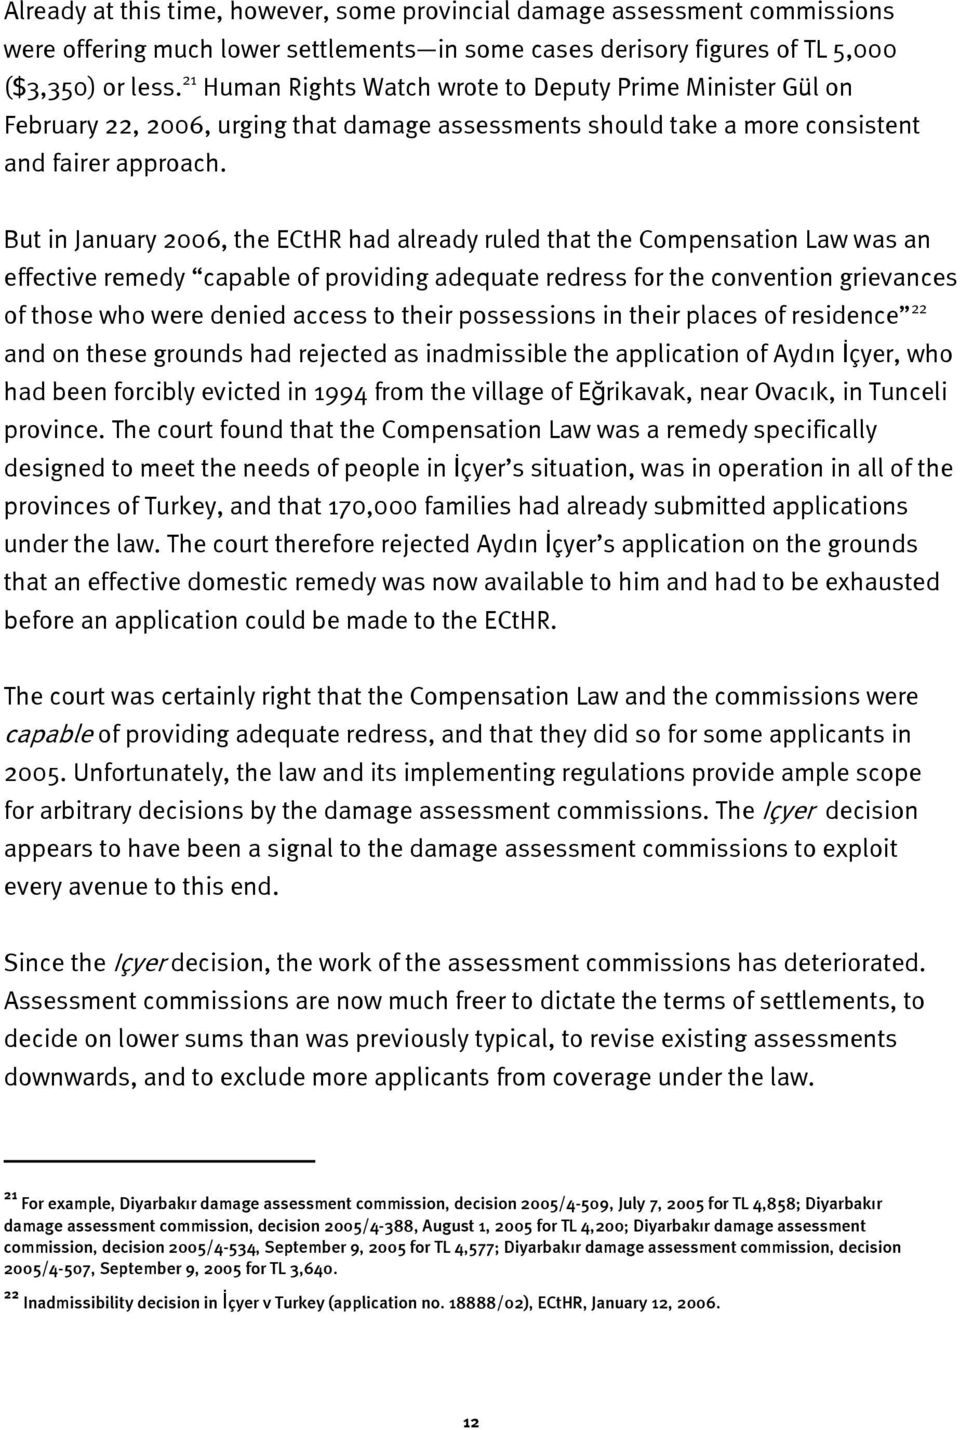 But in January 2006, the ECtHR had already ruled that the Compensation Law was an effective remedy capable of providing adequate redress for the convention grievances of those who were denied access